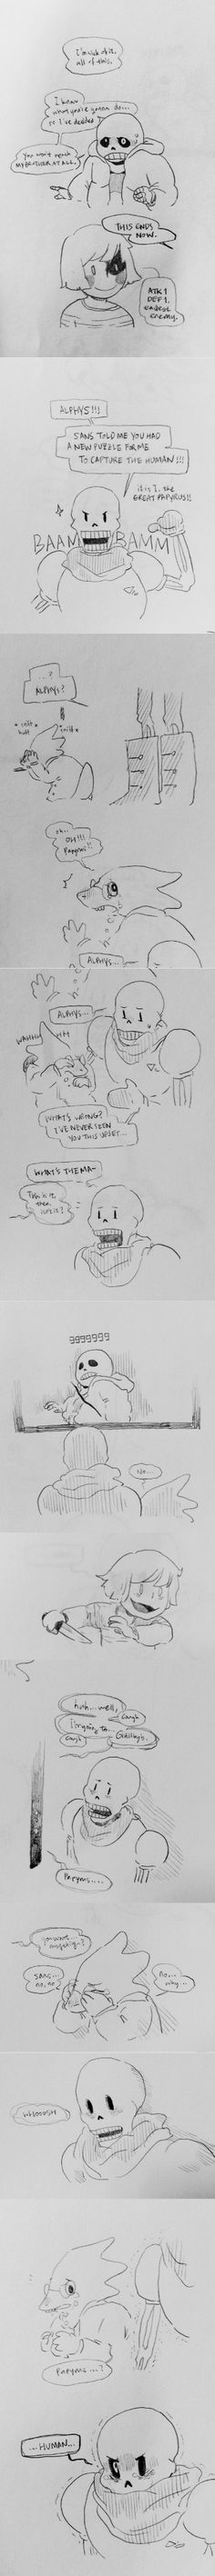 Sans, Chara, Alphys, and Papyrus - comic - http://floats-on.tumblr.com/post/132029119096/au-where-papyrus-is-the-final-boss-of-no-mercy